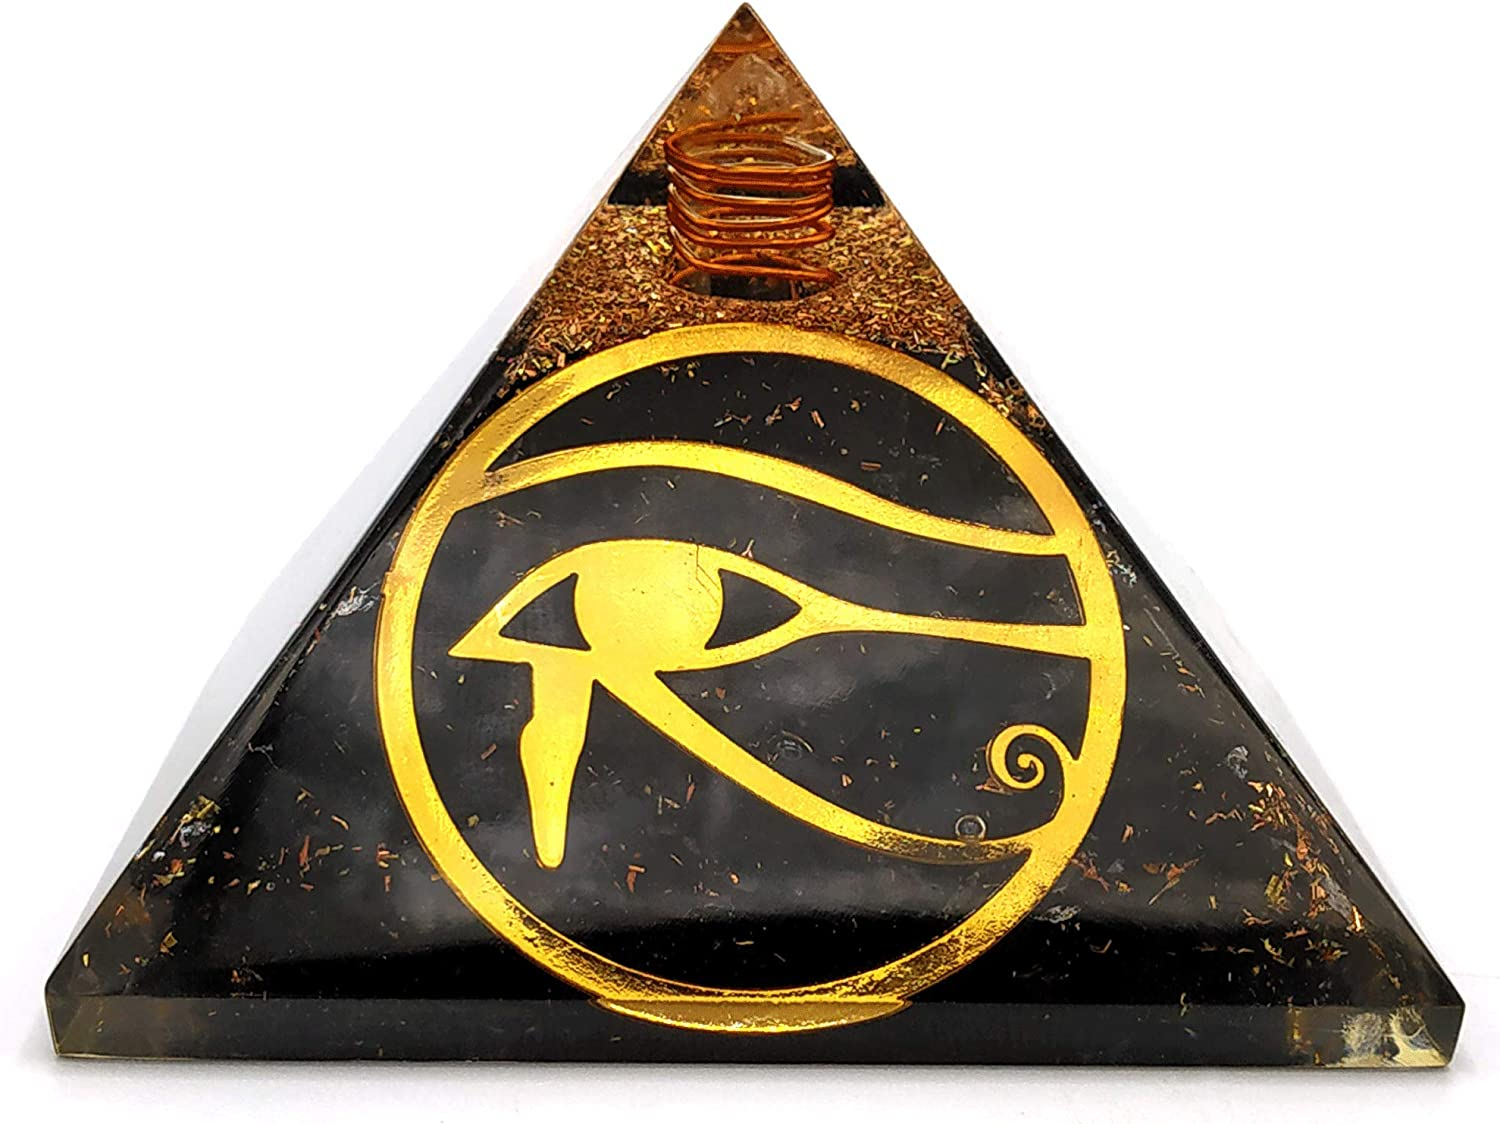 Shungite Orgonite Pyramid with Eye of Horus - Large Orgone Pyramid 75mm to Protect Against Negative Energy and EMF Protection